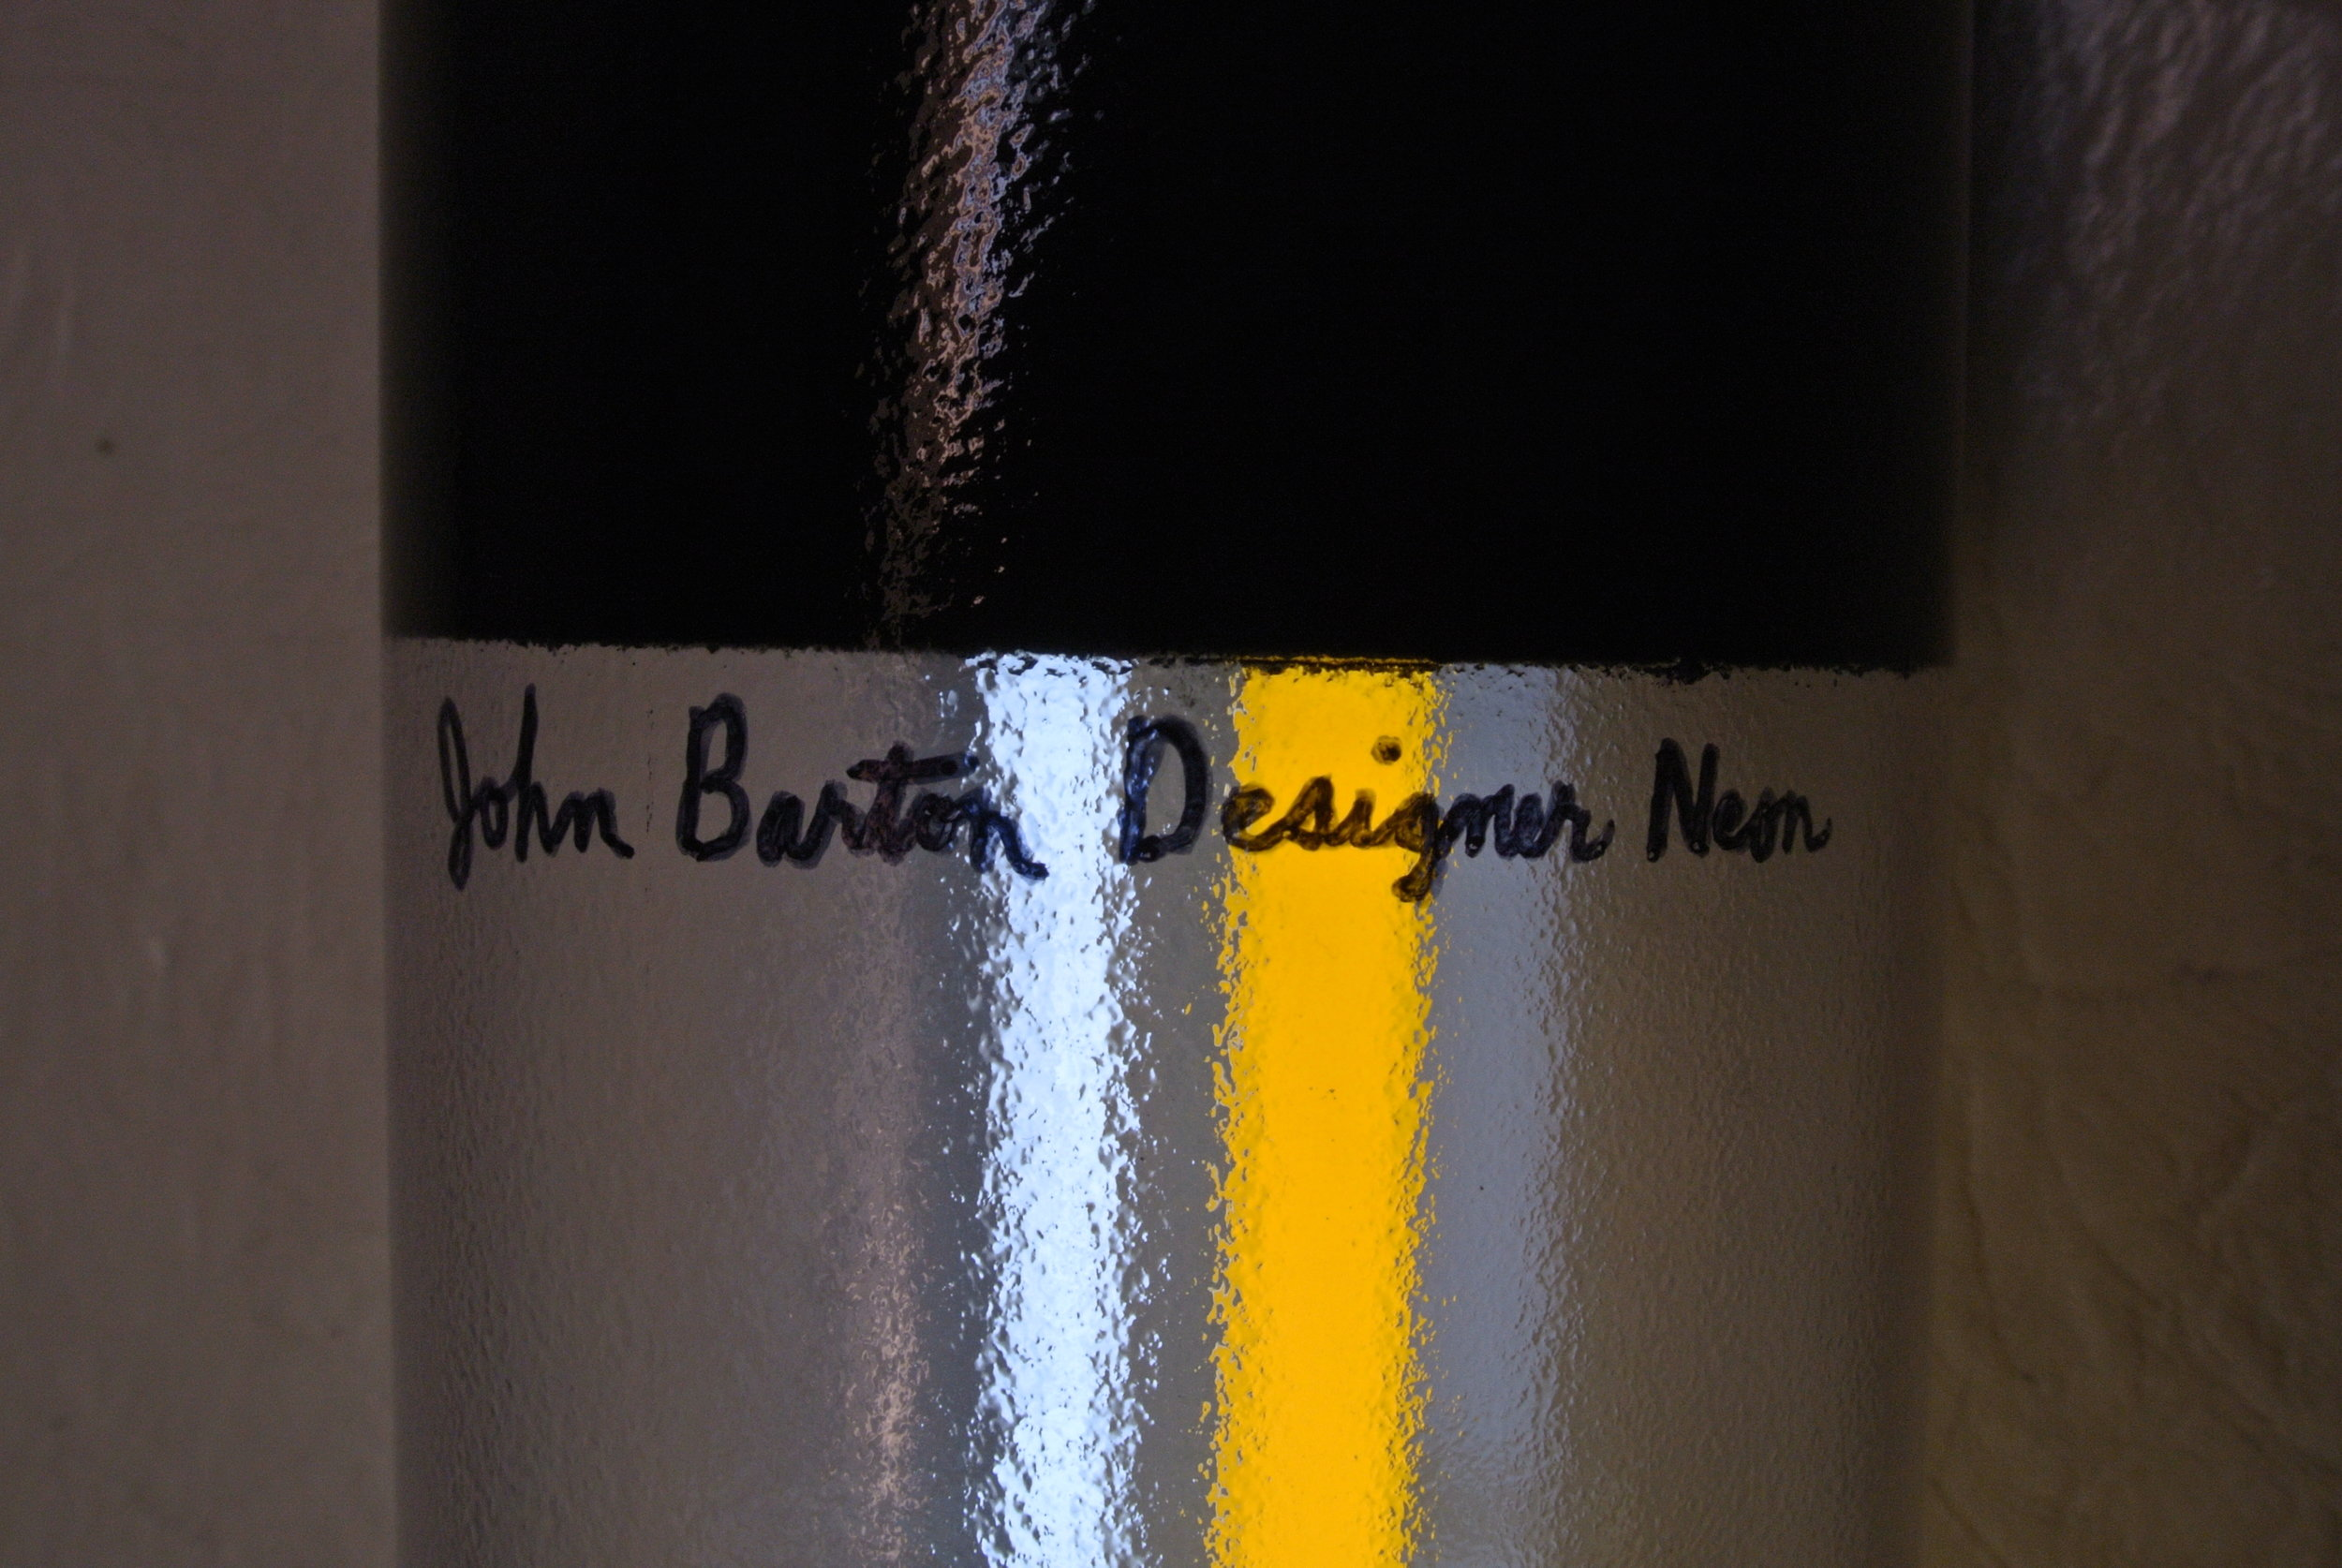 John Barton Designer Murano Italian stained glass neon light cylinders